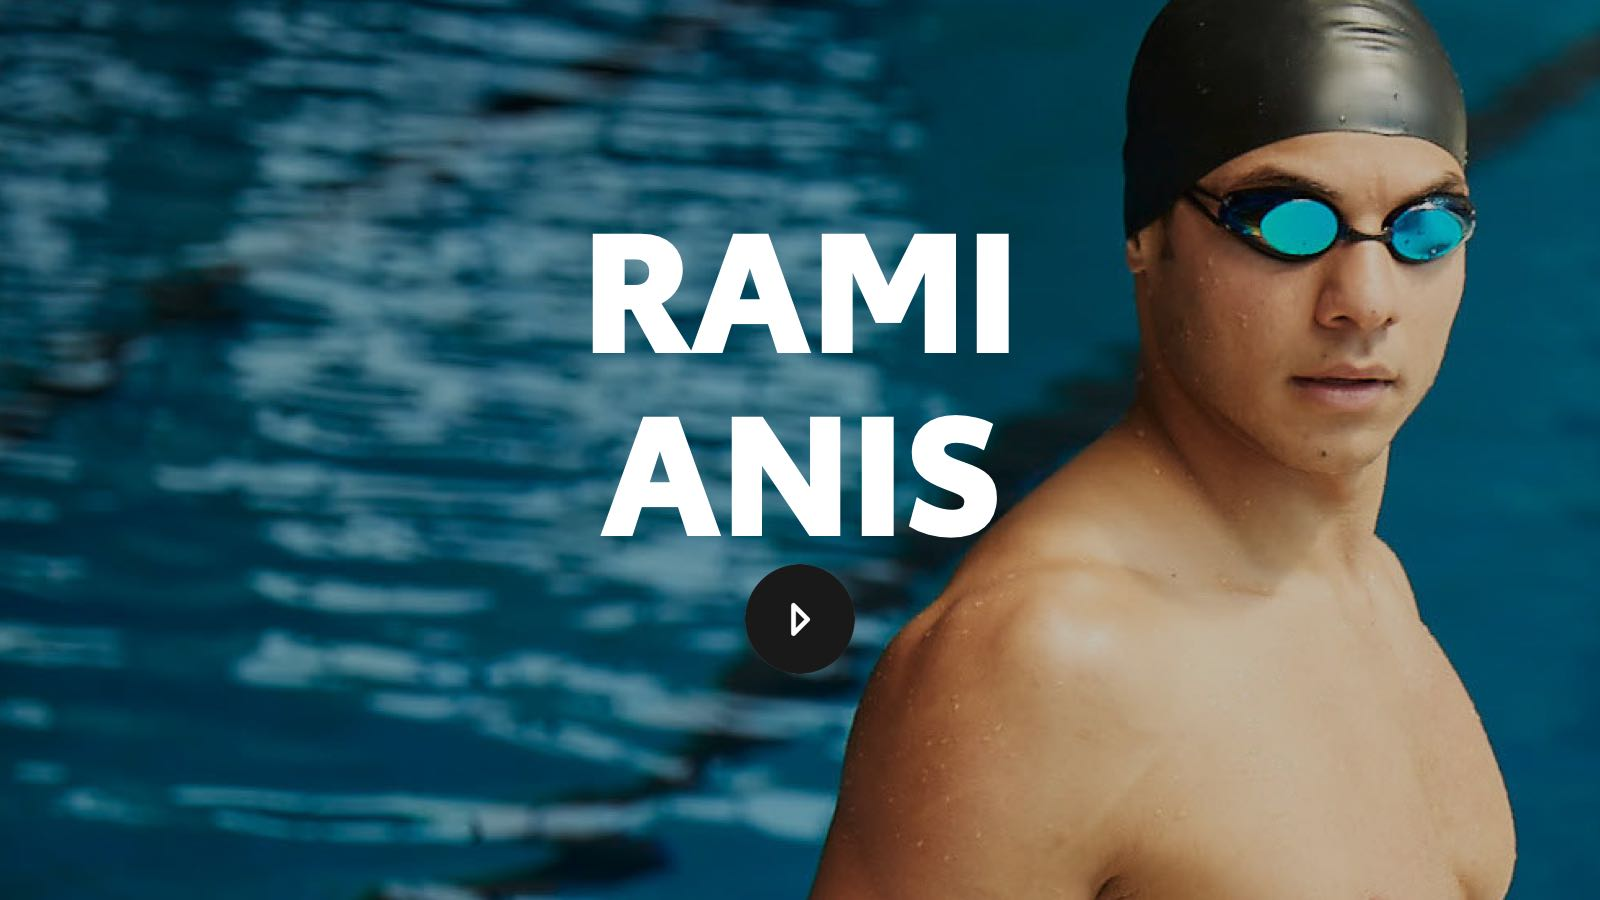 Rami stands in front of a competition pool, dripping from a race and wearing mirrored goggles.